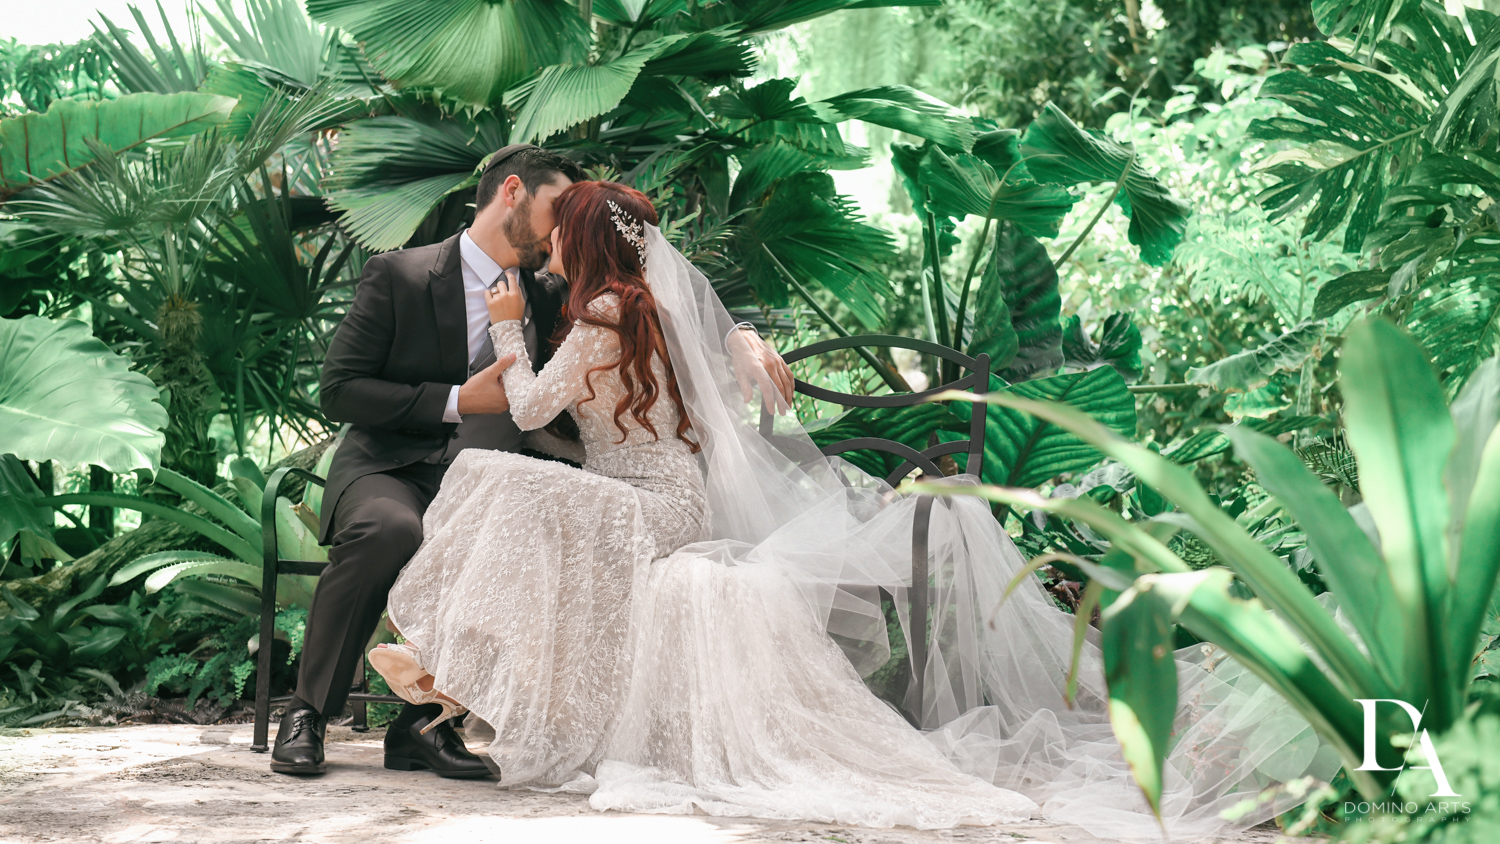 kissing couple at Vintage Garden Wedding at Flagler Museum Palm Beach by Domino Arts Photography